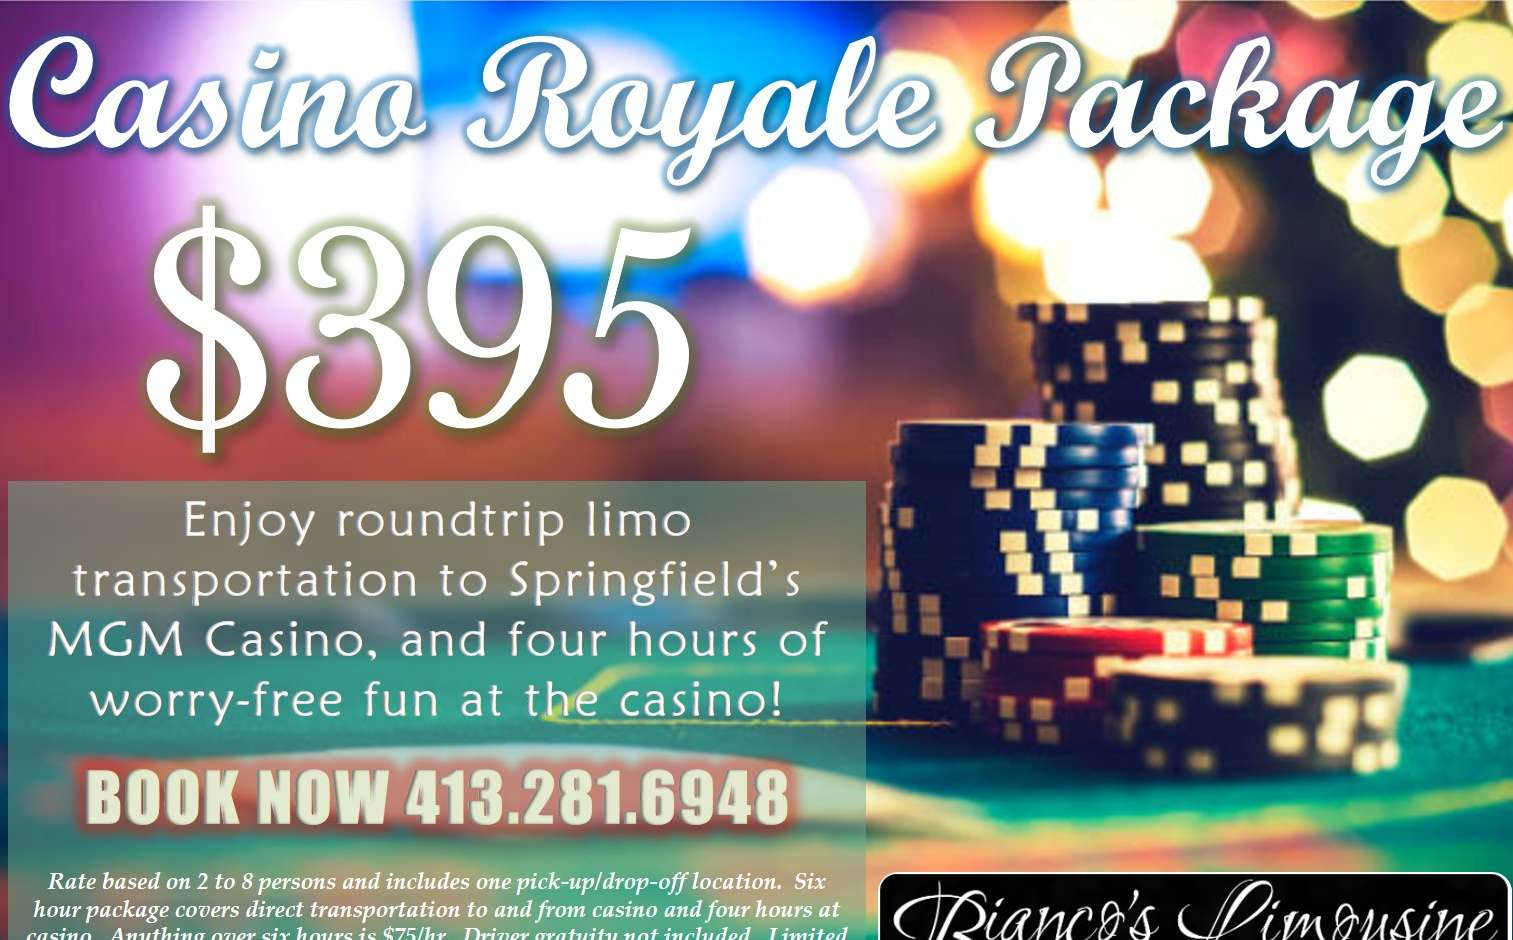 Casino Royale Package